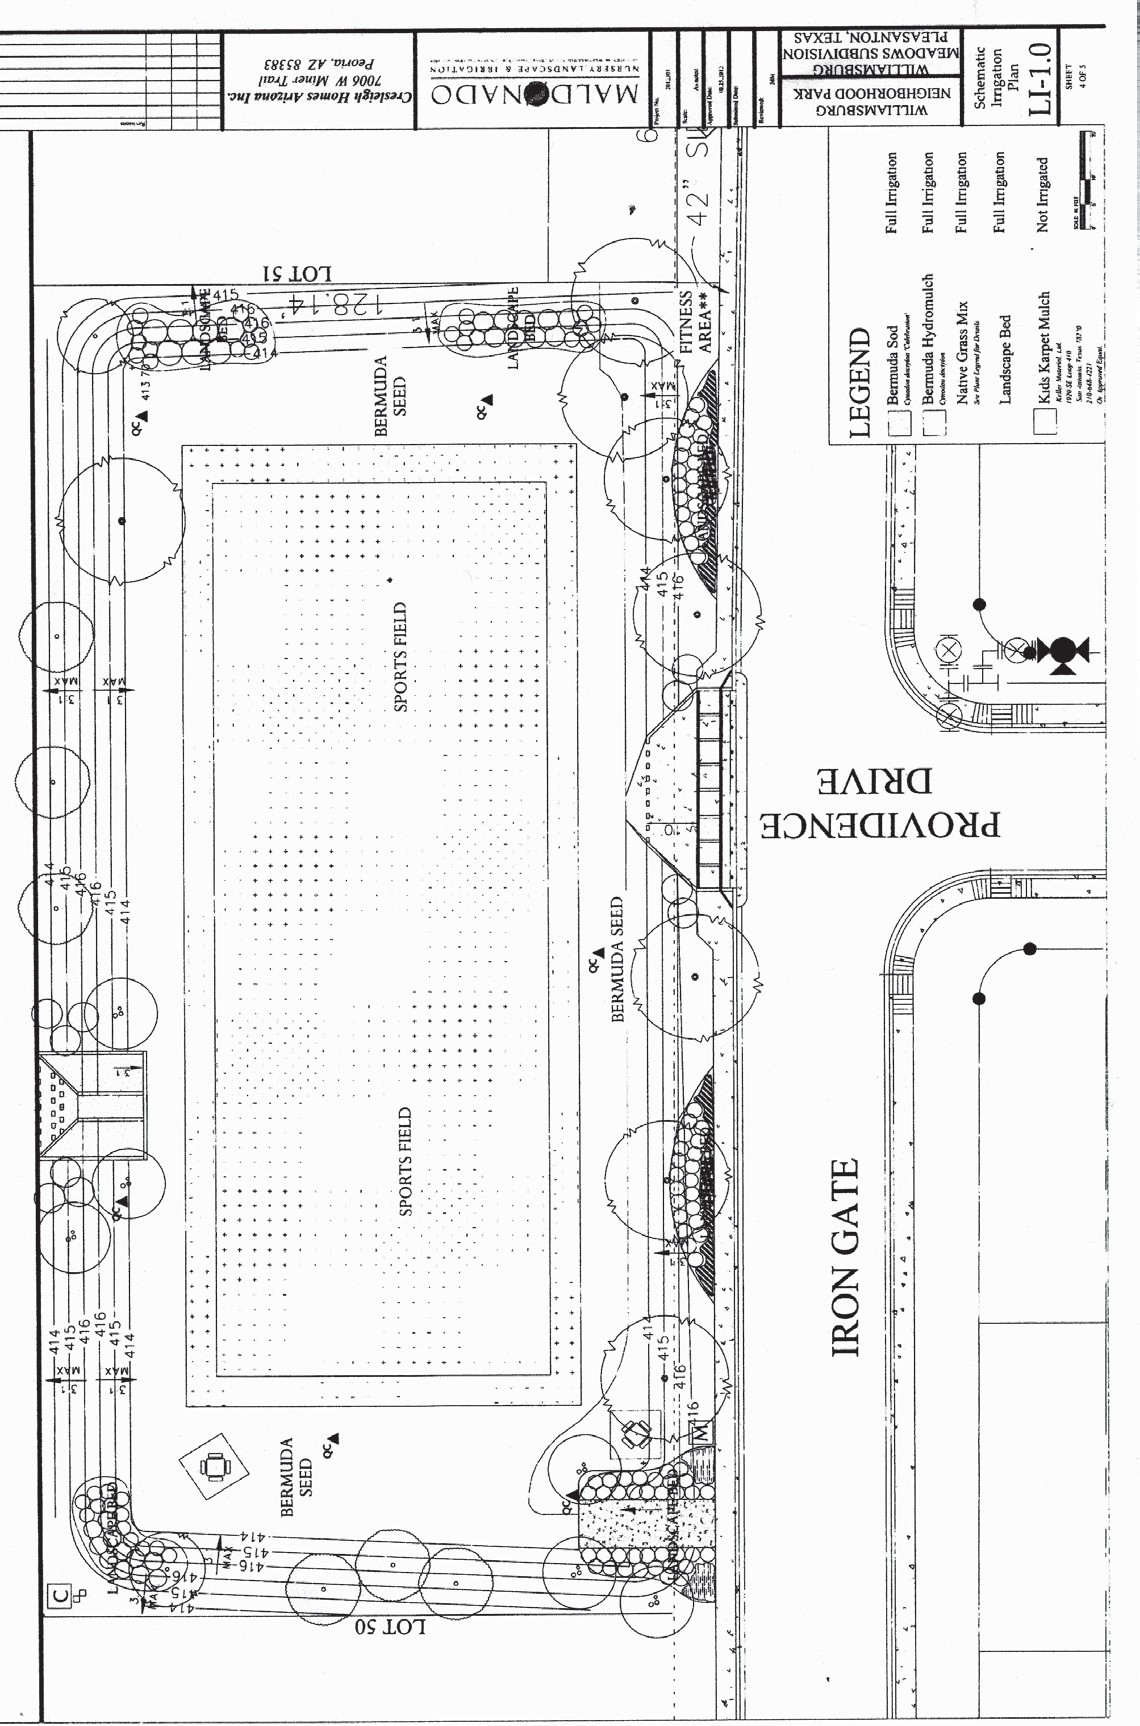 The design for the park that will be built in the Williamsburg Phase IV subdivision shows a sports field and picnic areas. The park, built by the developers, will be situated at the far east end of the subdivision, located off of FM 3350 and Goodwin Street area.